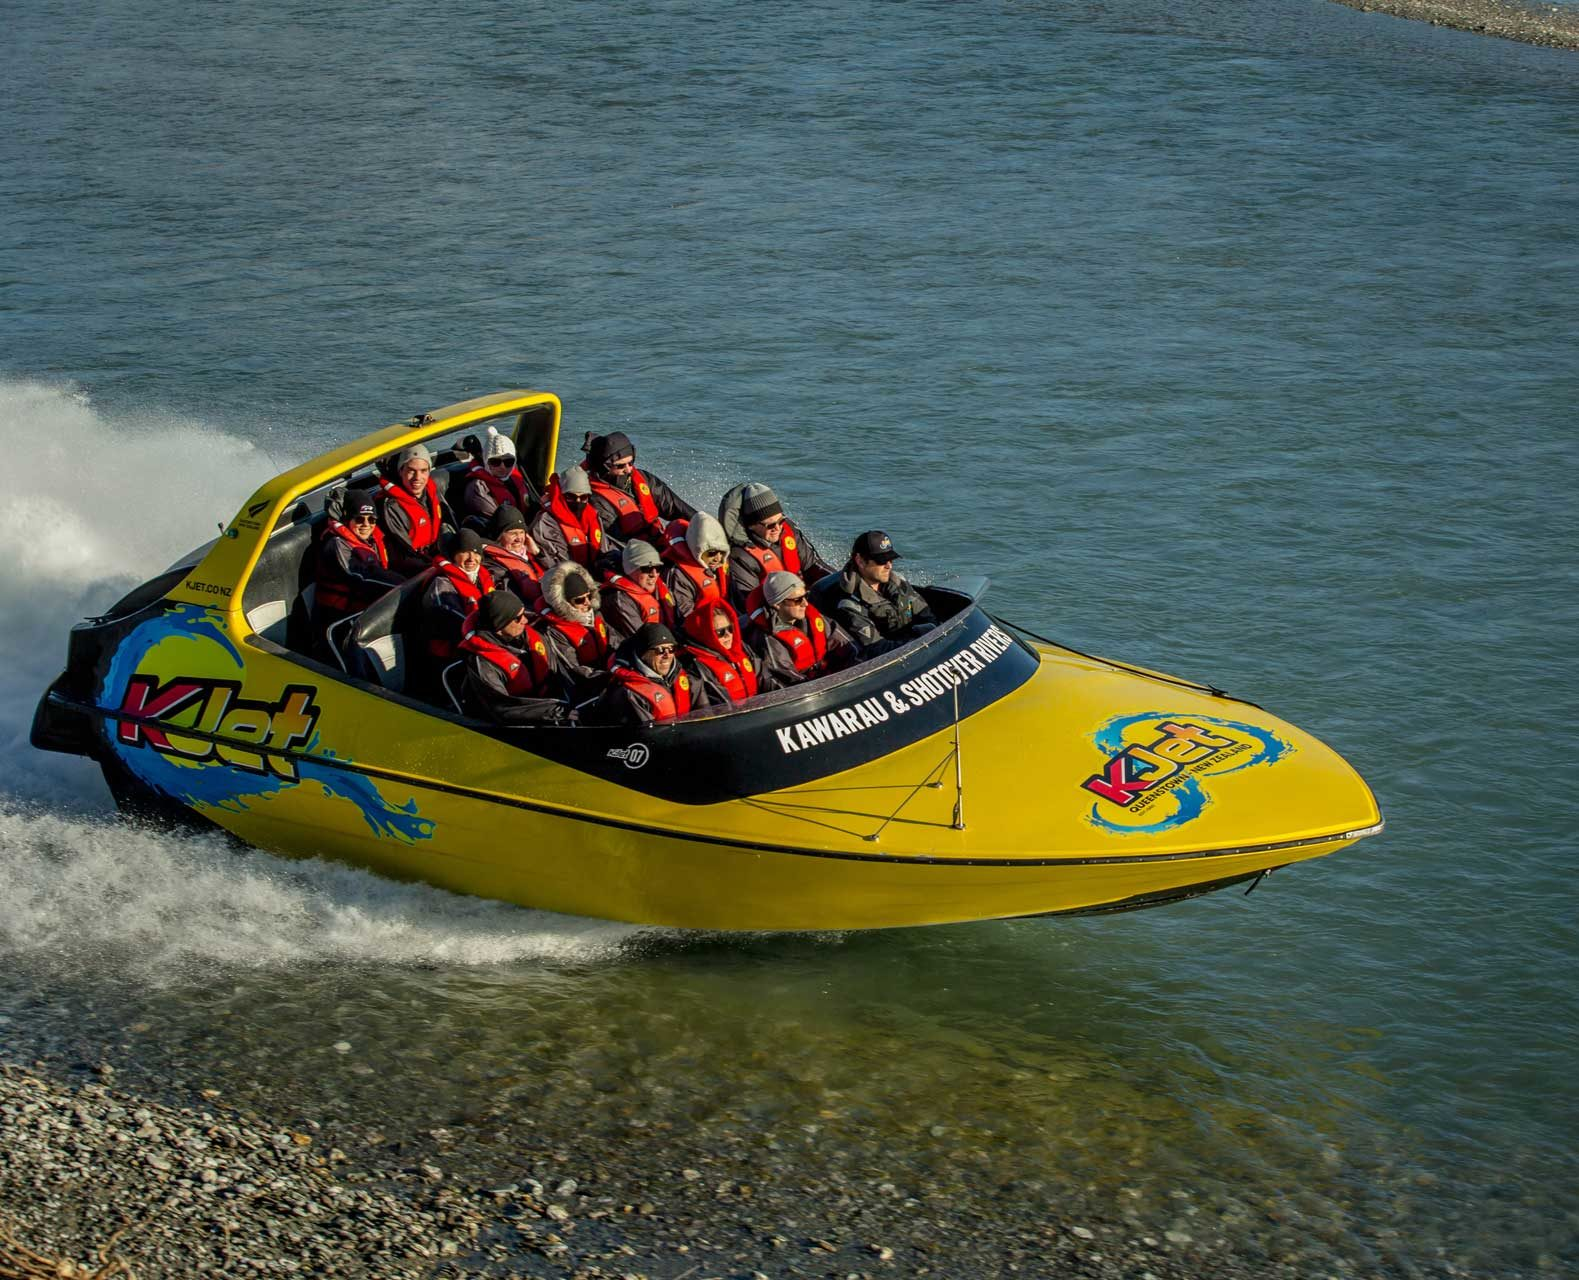 Customers on Jet boat